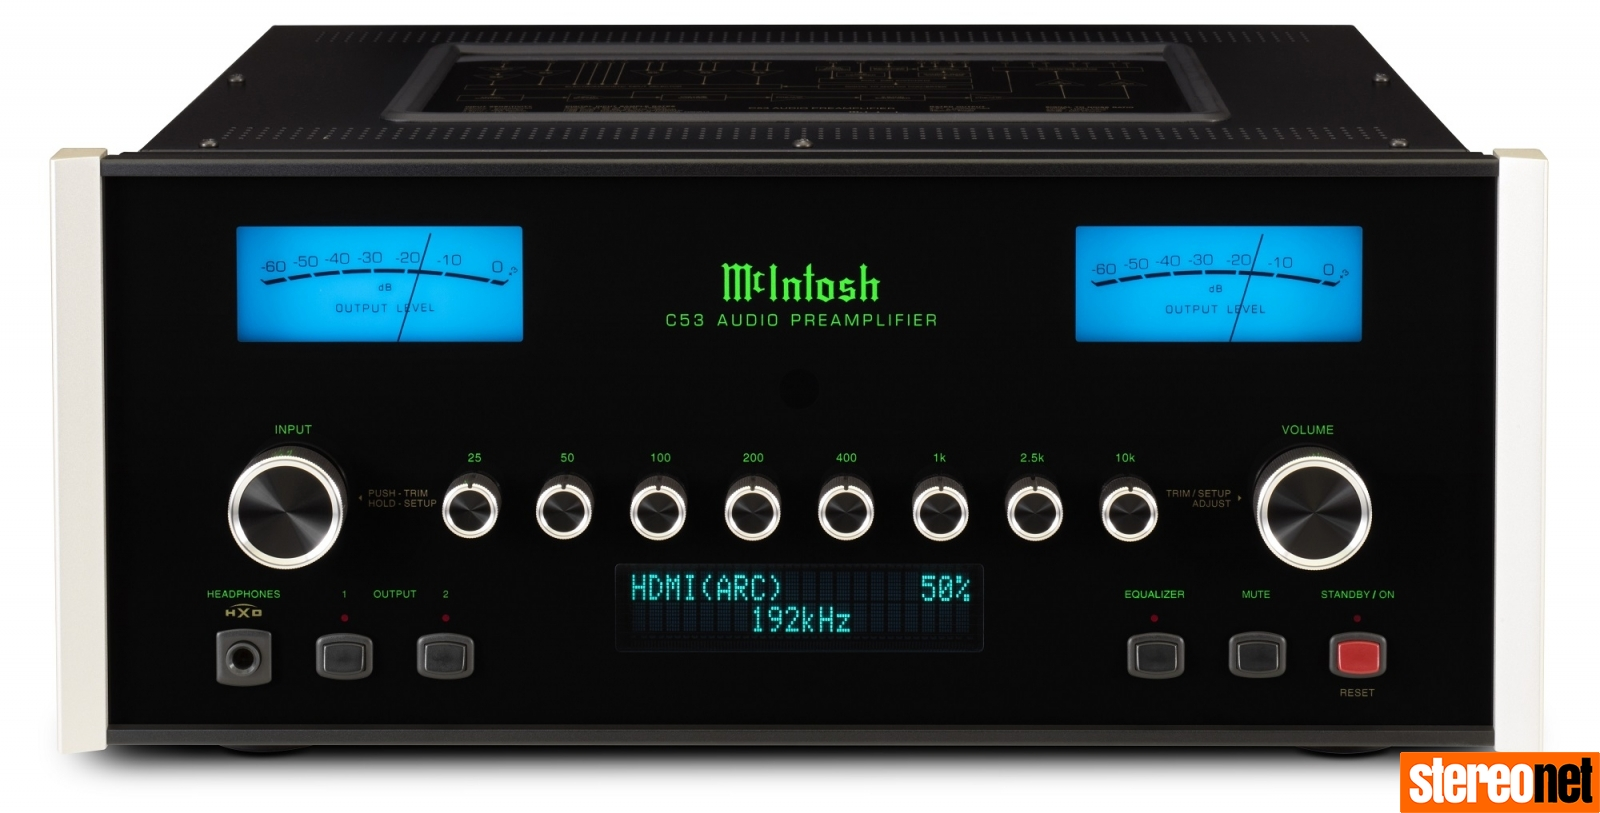 McIntosh C53 DA2 HDMI ARC